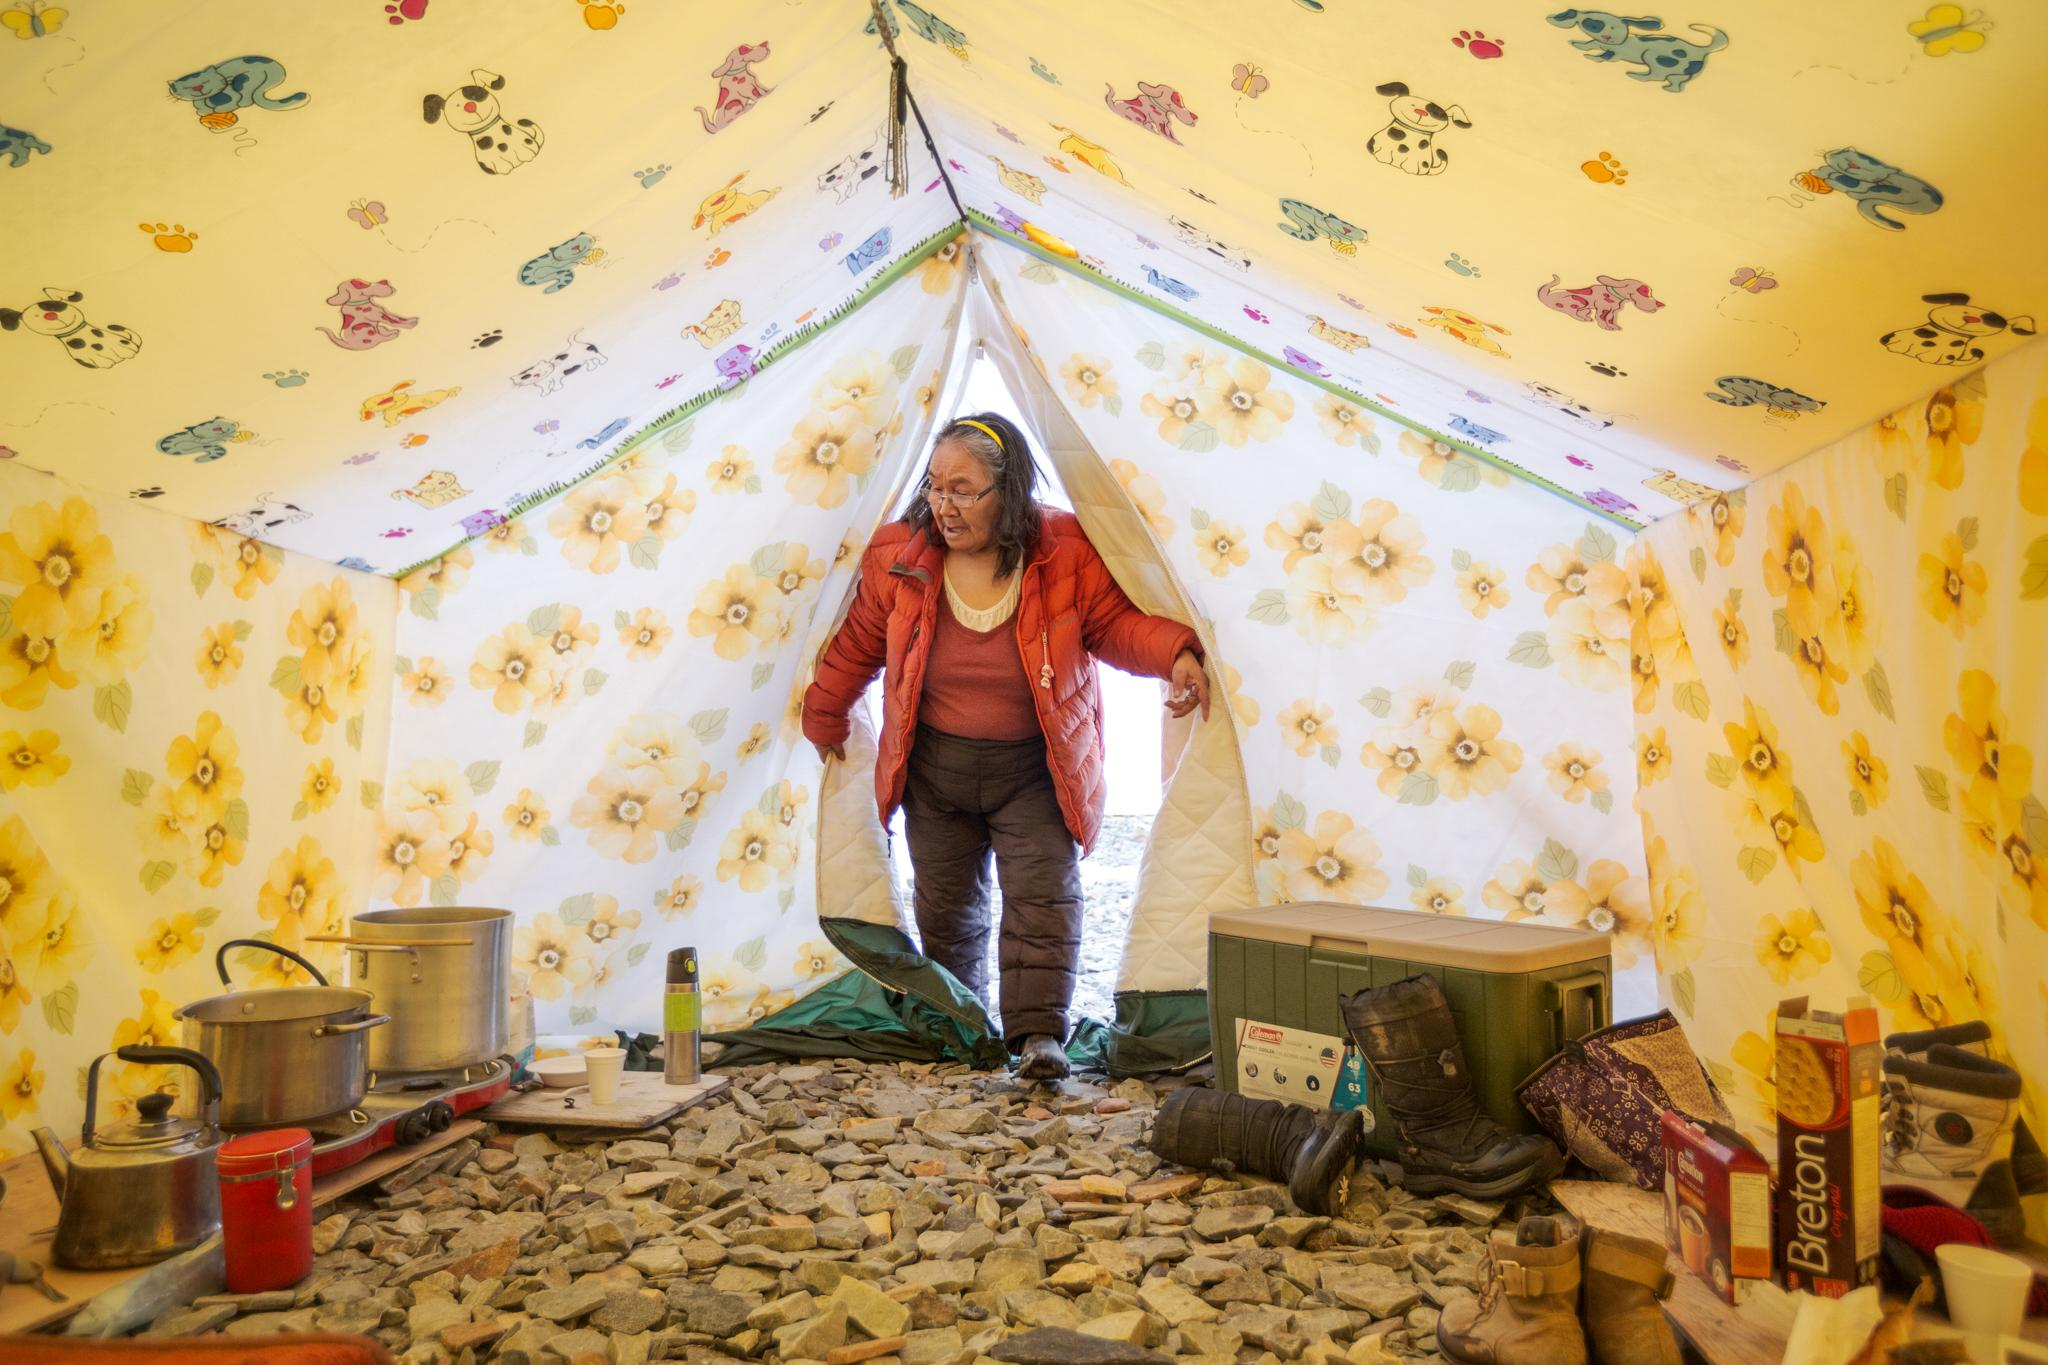 Tootalik Ejangiaq enters her tent at the annual spring camp where she helps young people learn traditional Inuit skills.